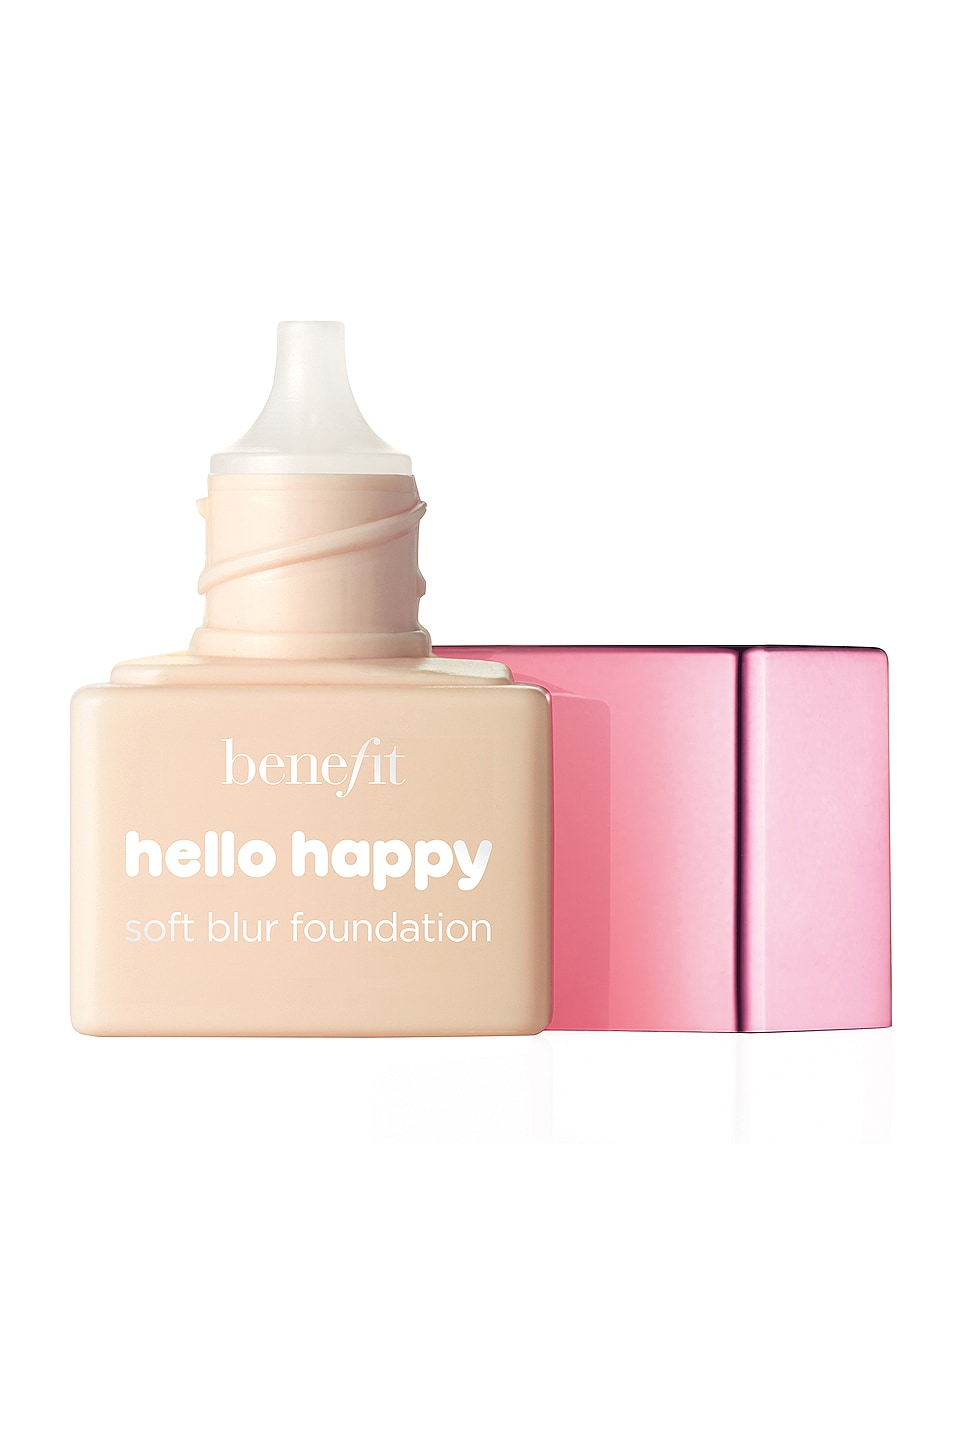 Benefit Cosmetics Hello Happy Soft Blur Foundation Mini in Shade 02